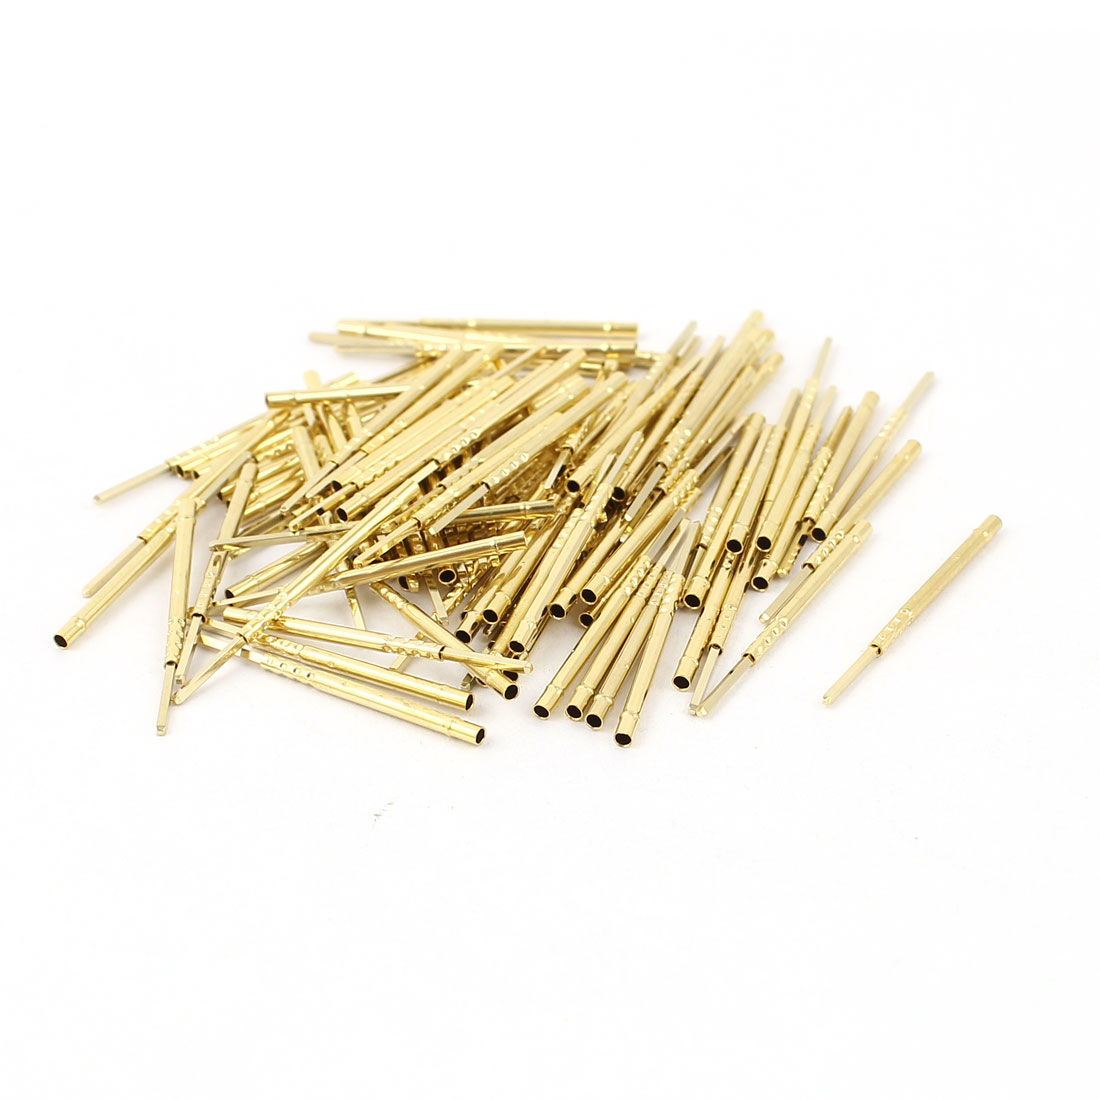 100 Pcs R75-2W 1.32mm Dia Testing Probe Pin Receptacles Gold Tone